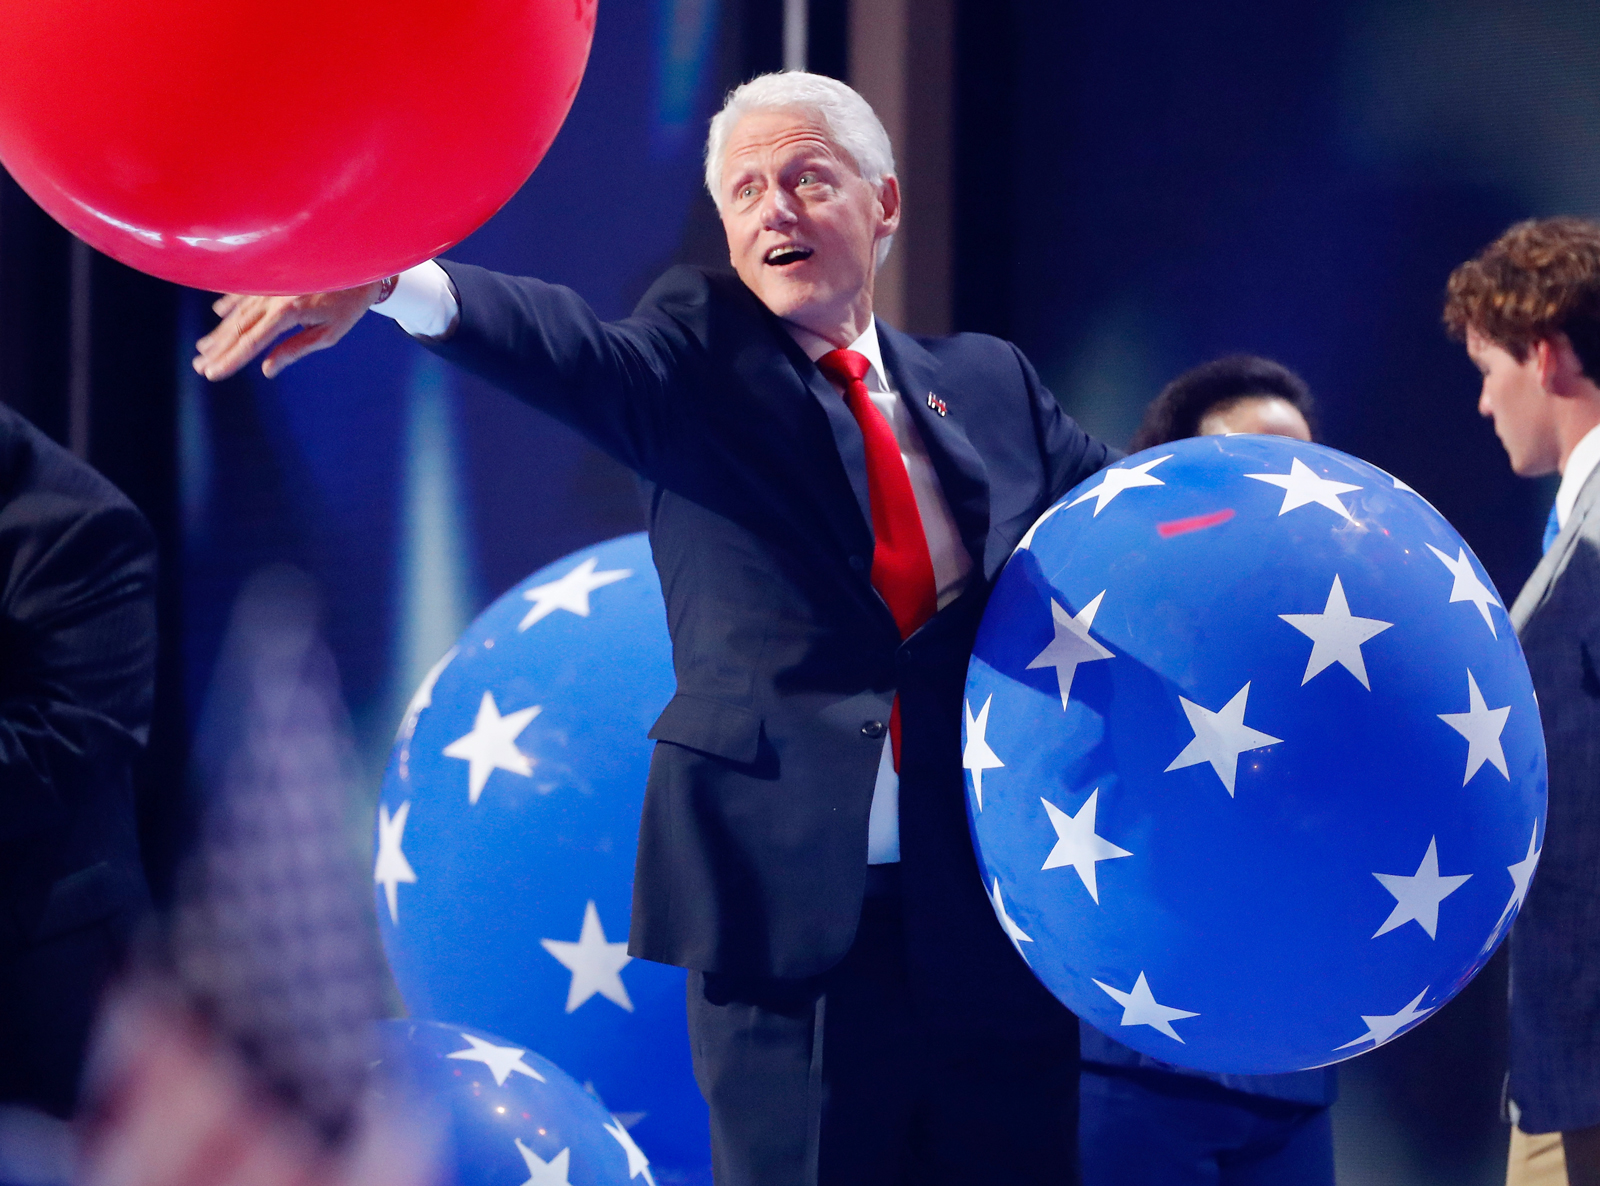 <p>Bill Clinton Fell In Love With a Balloon?</p>